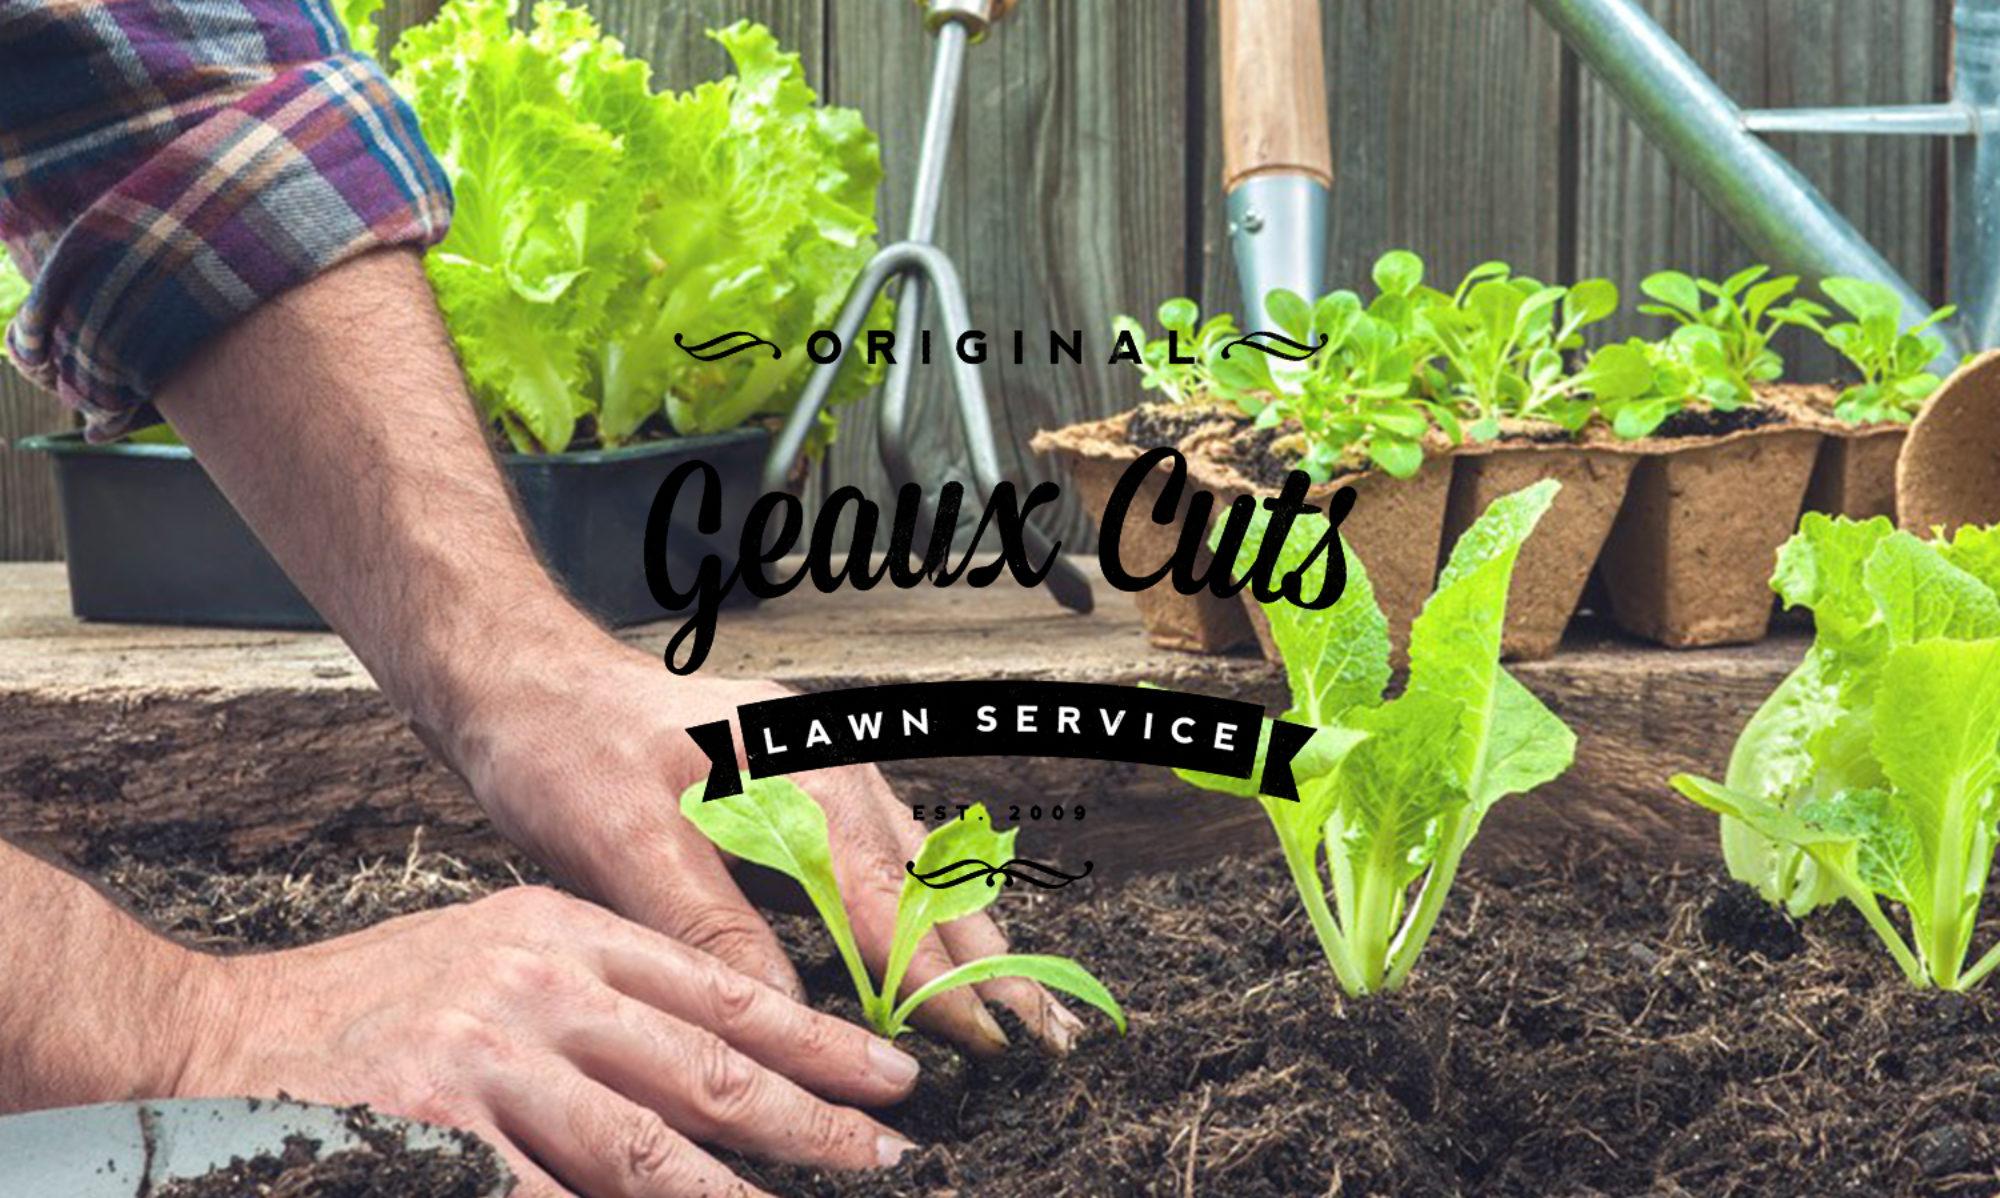 Geaux Cuts Landscaping